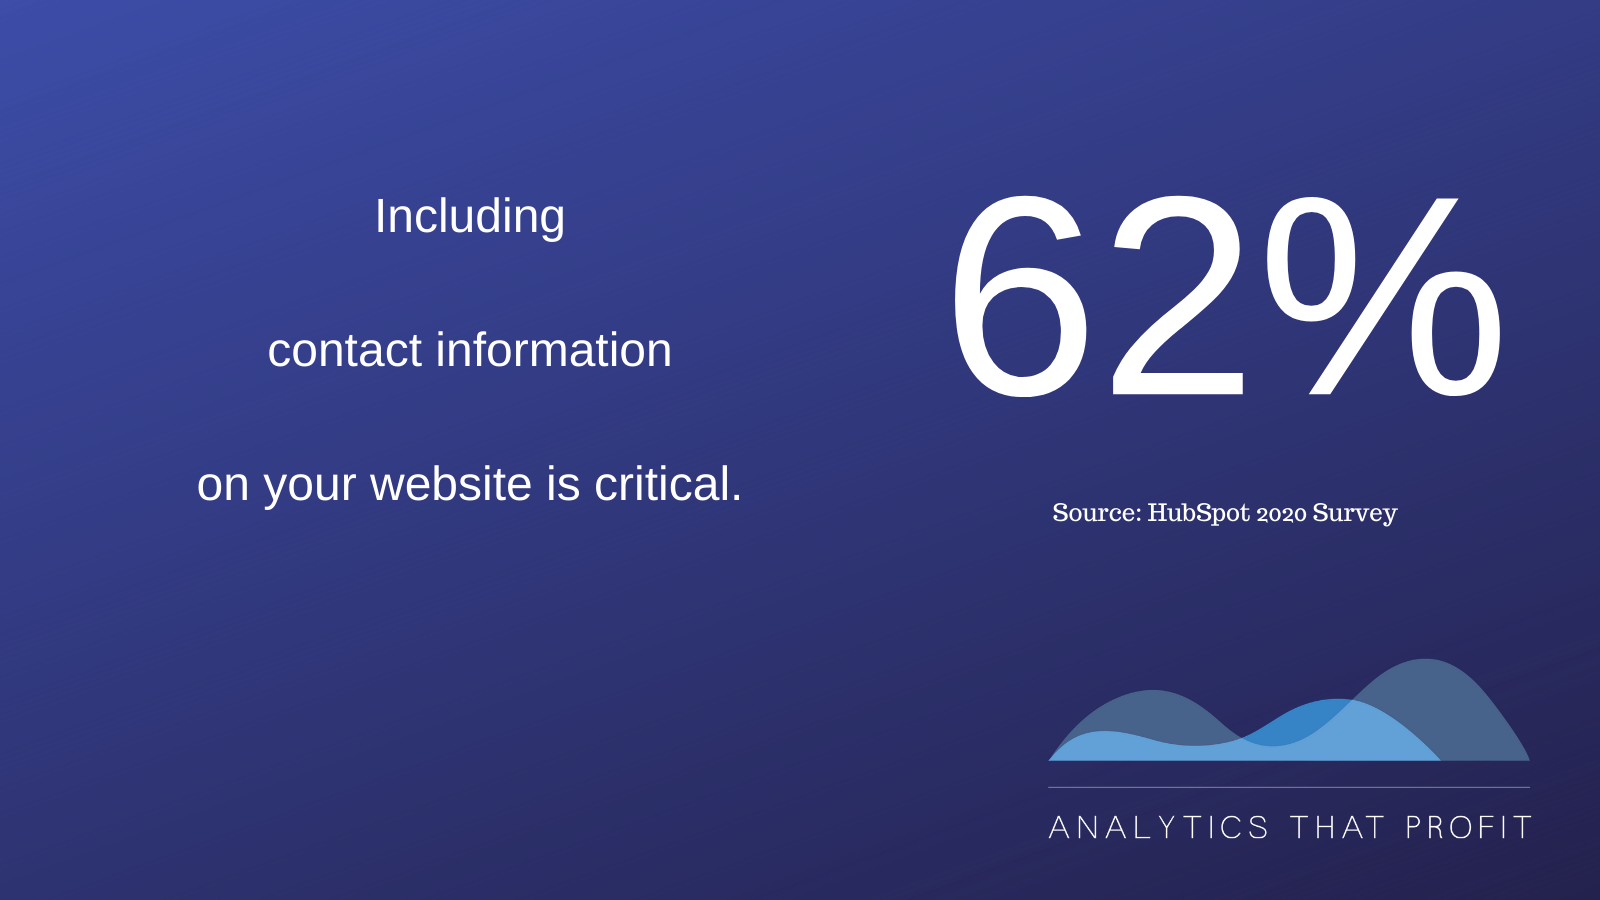 contact information on website_analytics that profit